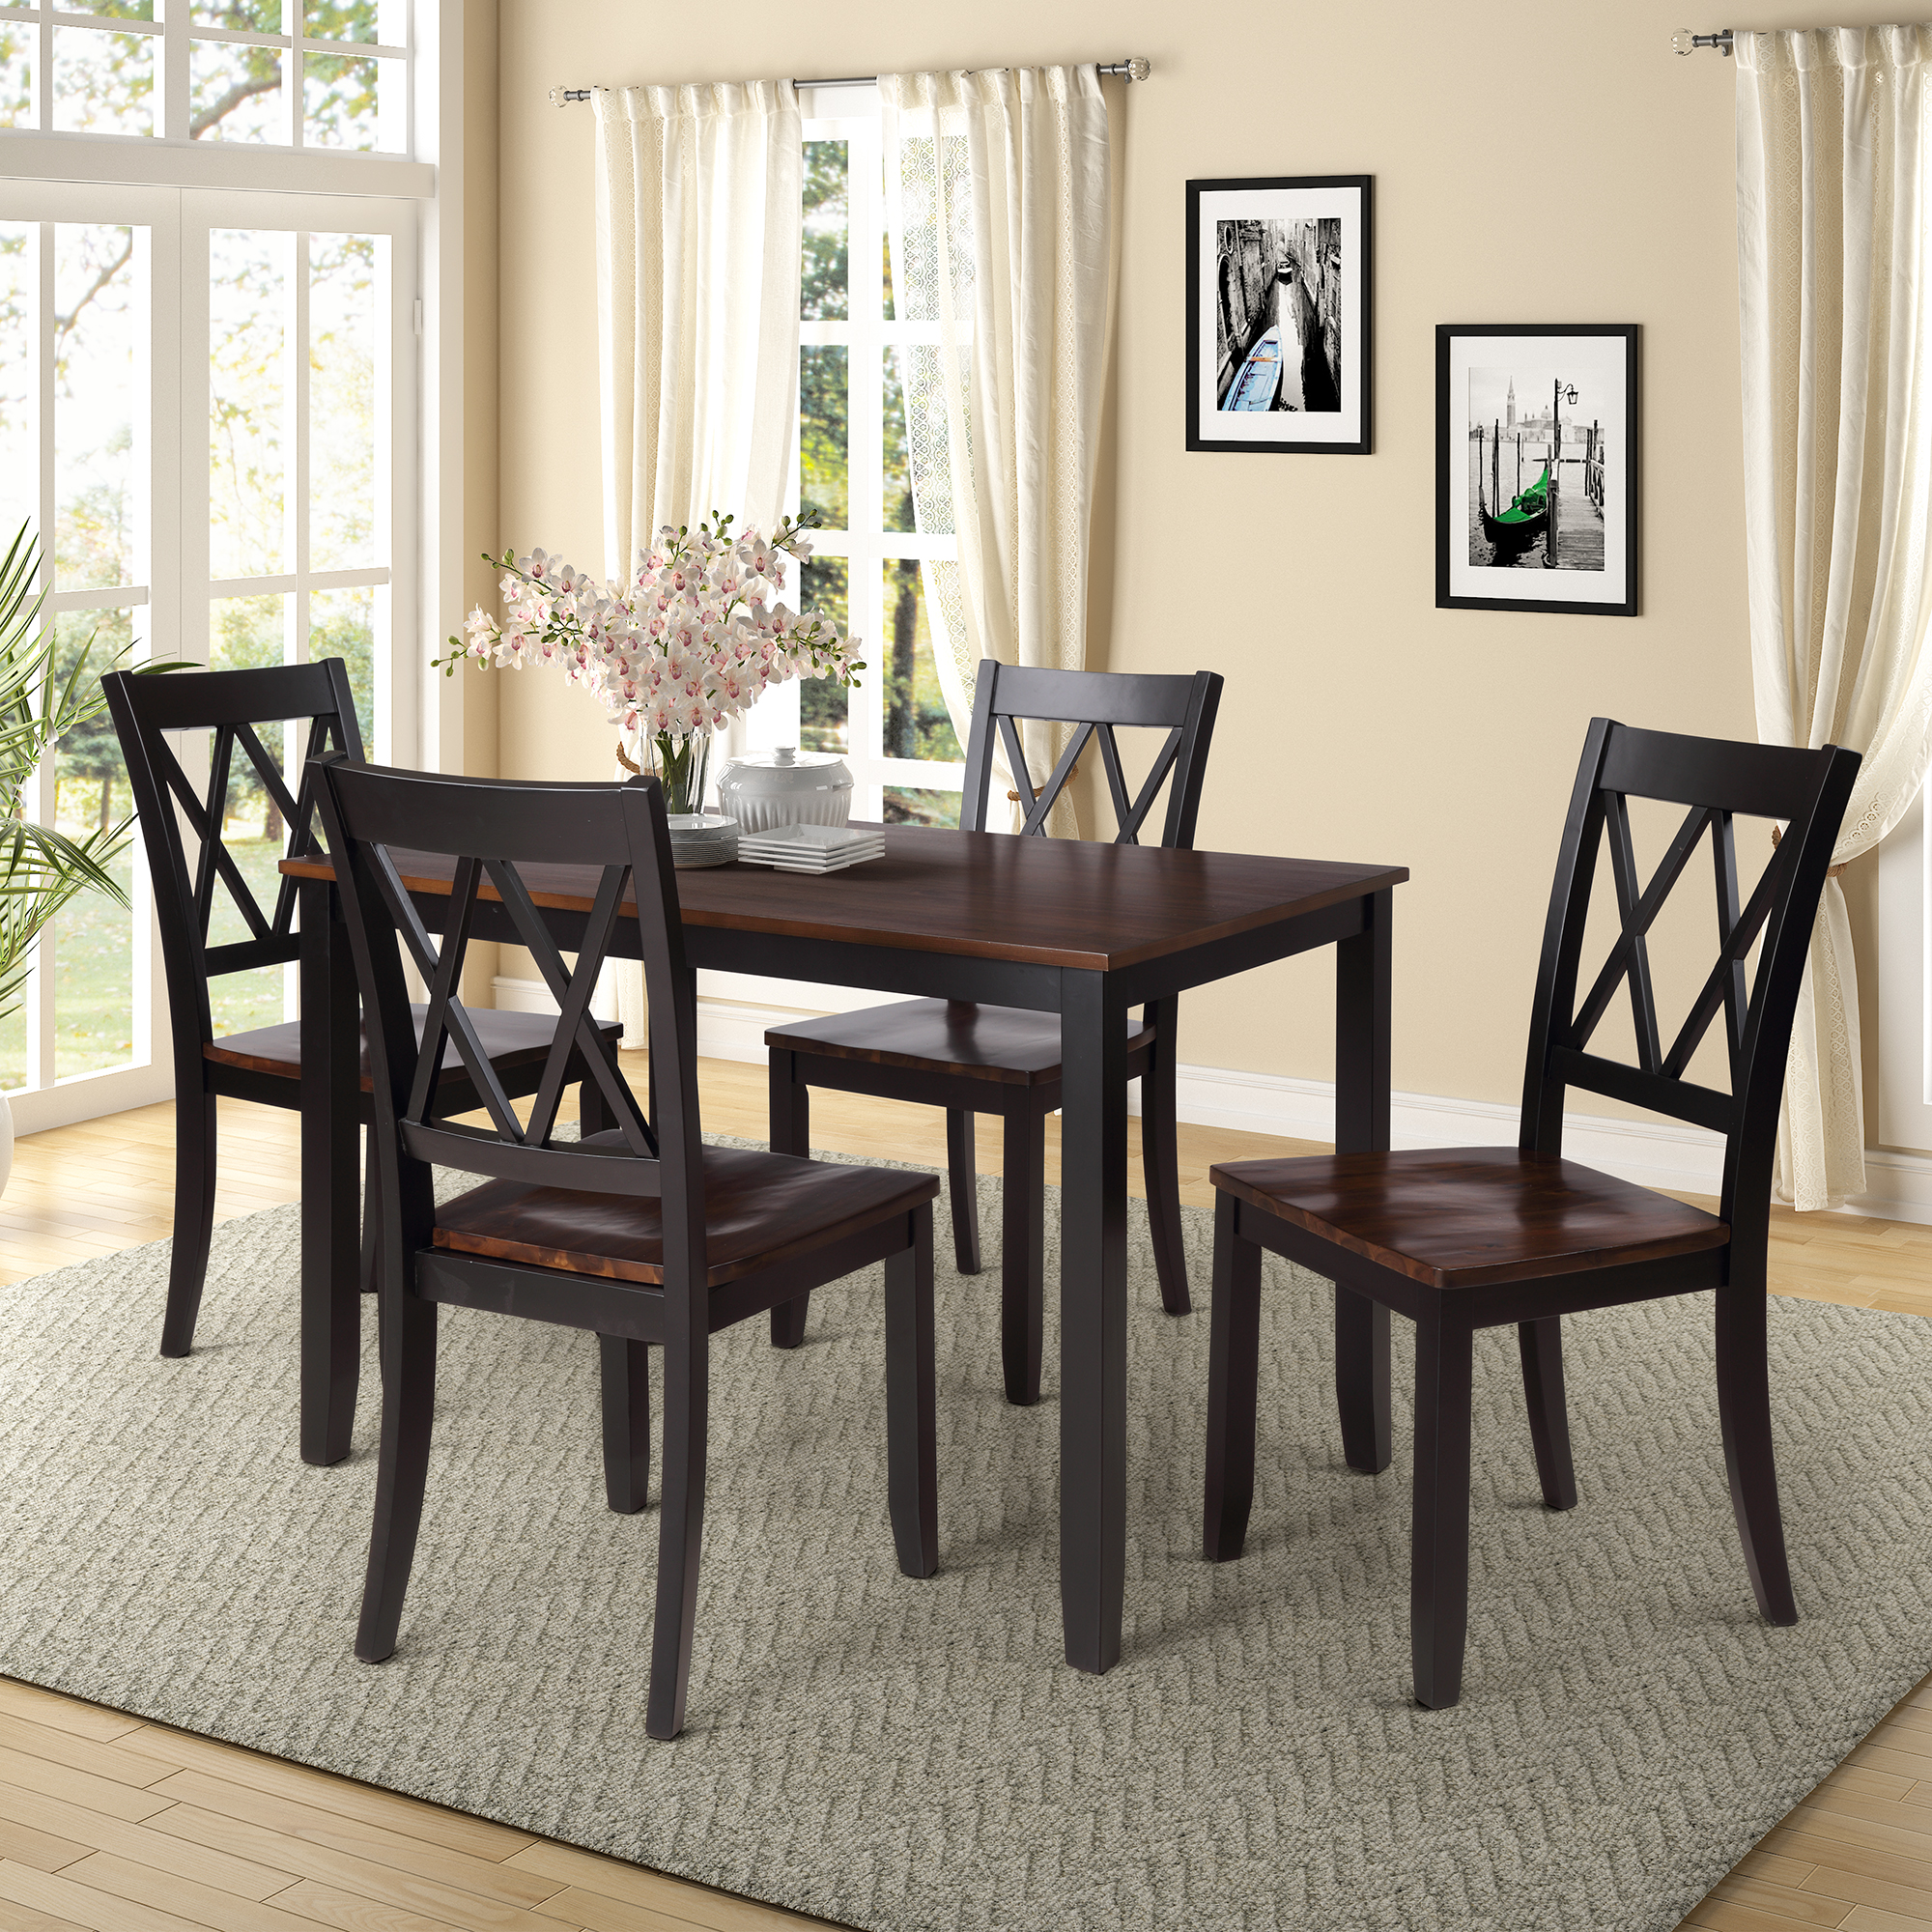 5 piece dining table set square kitchen table with 4